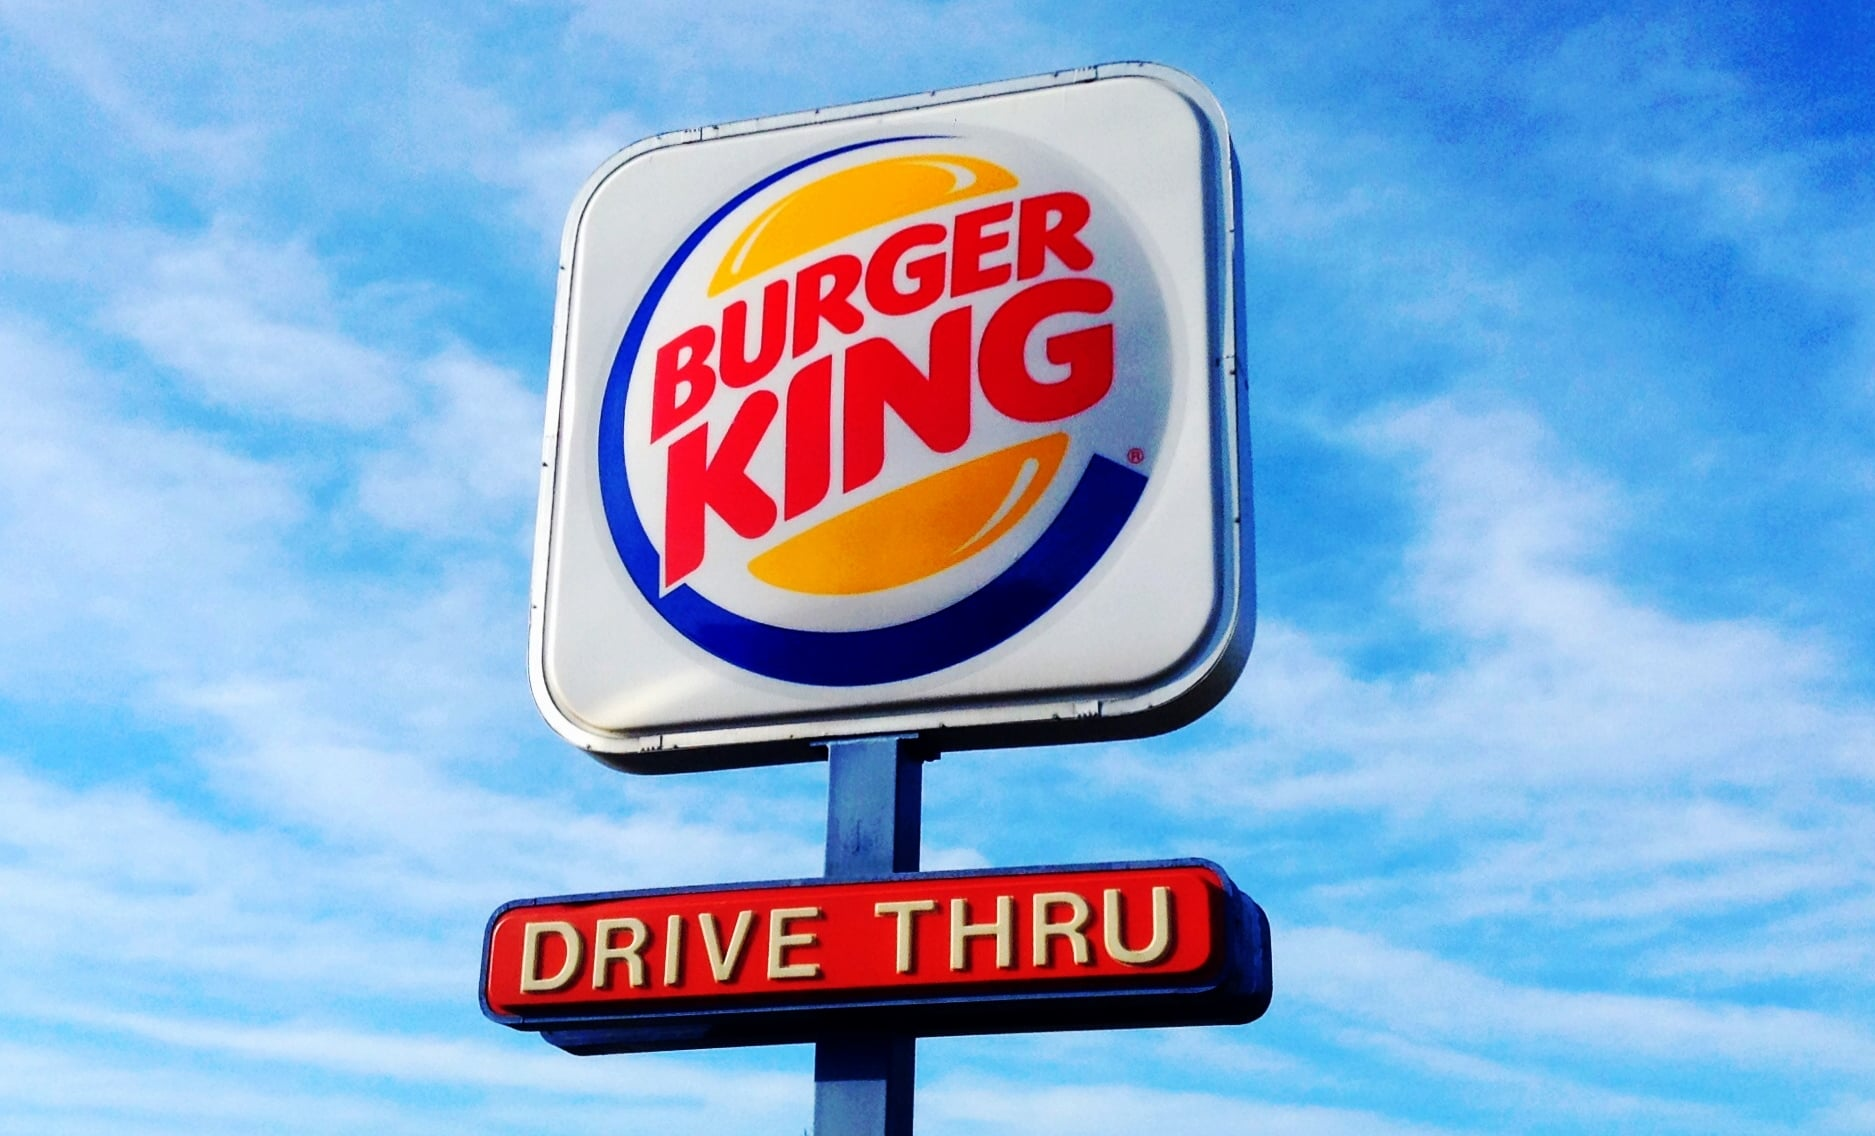 A Former Burger King Employee Recently Shared Enlightening Details About The Fast Food Giant During One Of Reddits Recurring Ask Me Anything Sessions